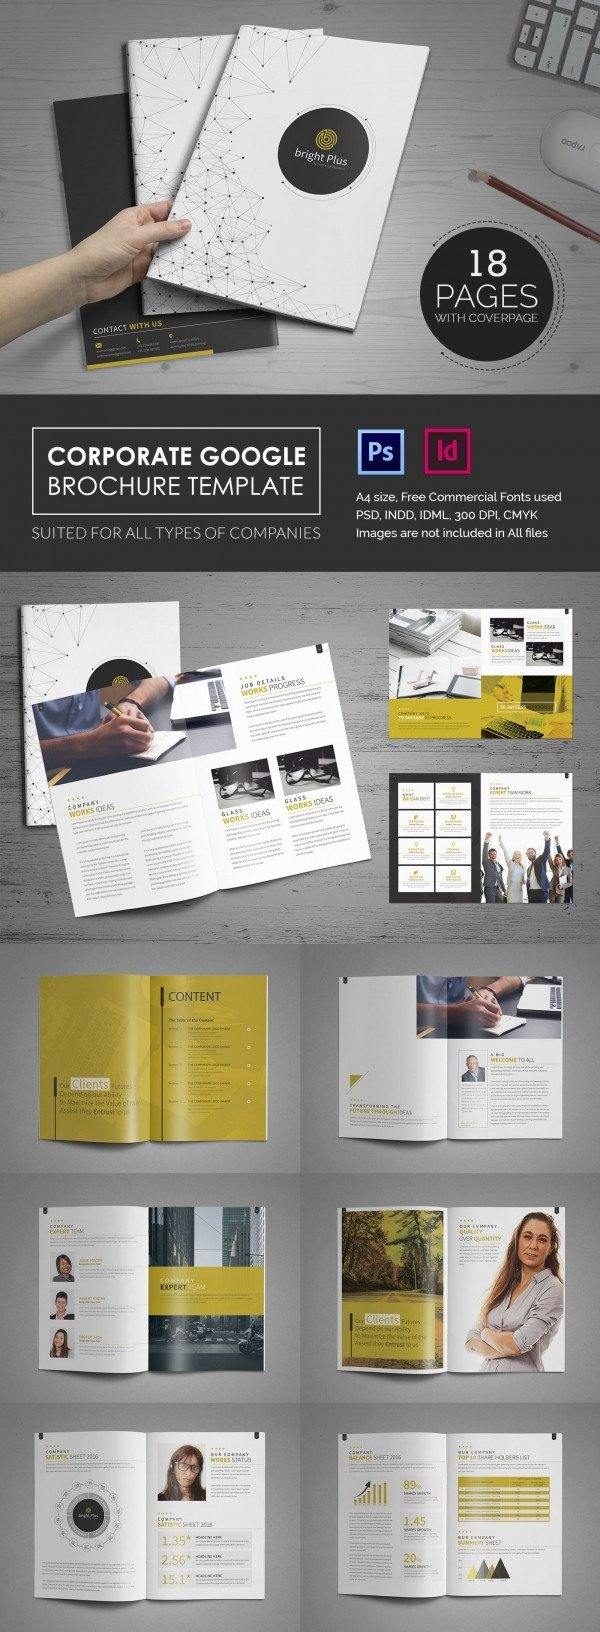 Brochure Google Docs Template 10 Fabulous Google Brochure Templates